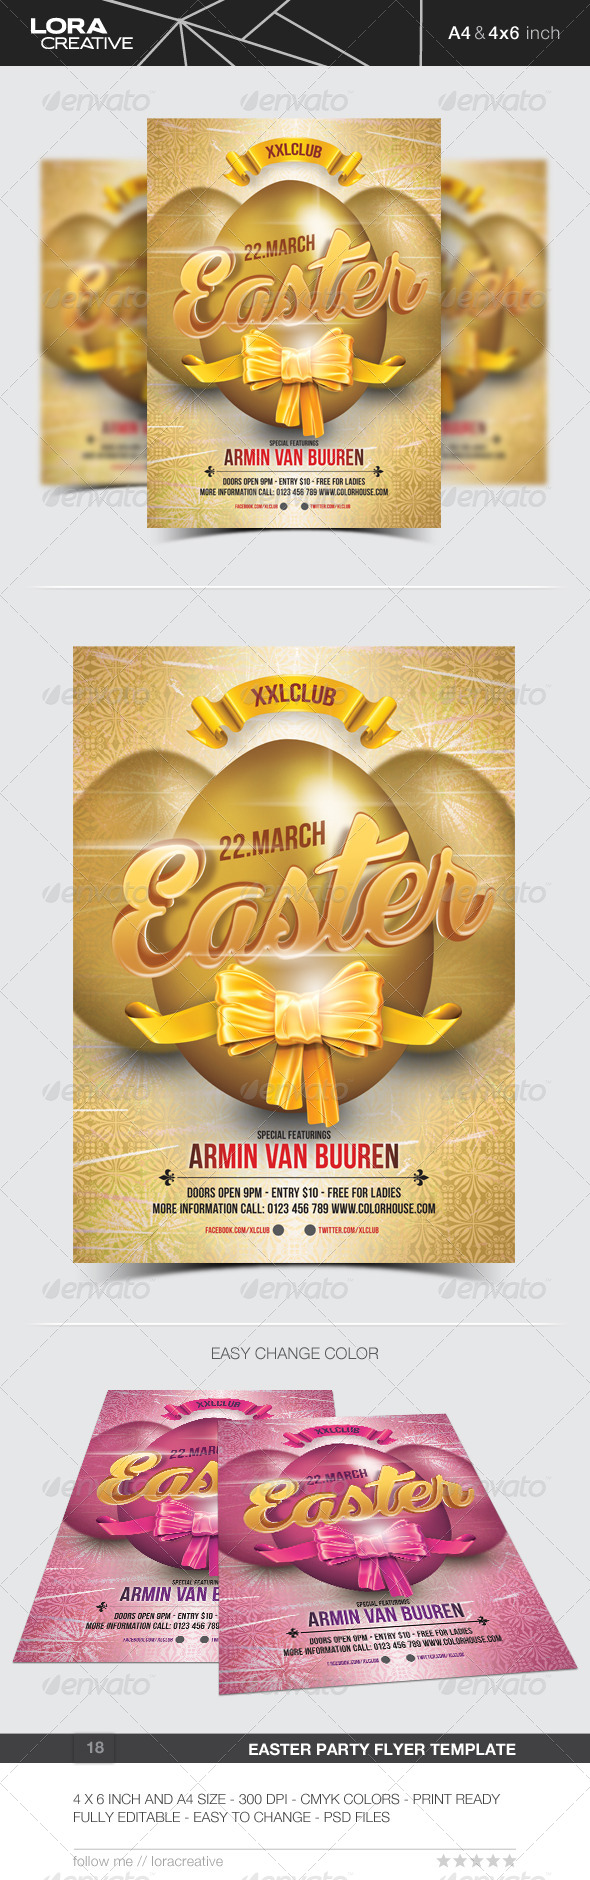 GraphicRiver Easter Party Flyer Poster 18 7231268